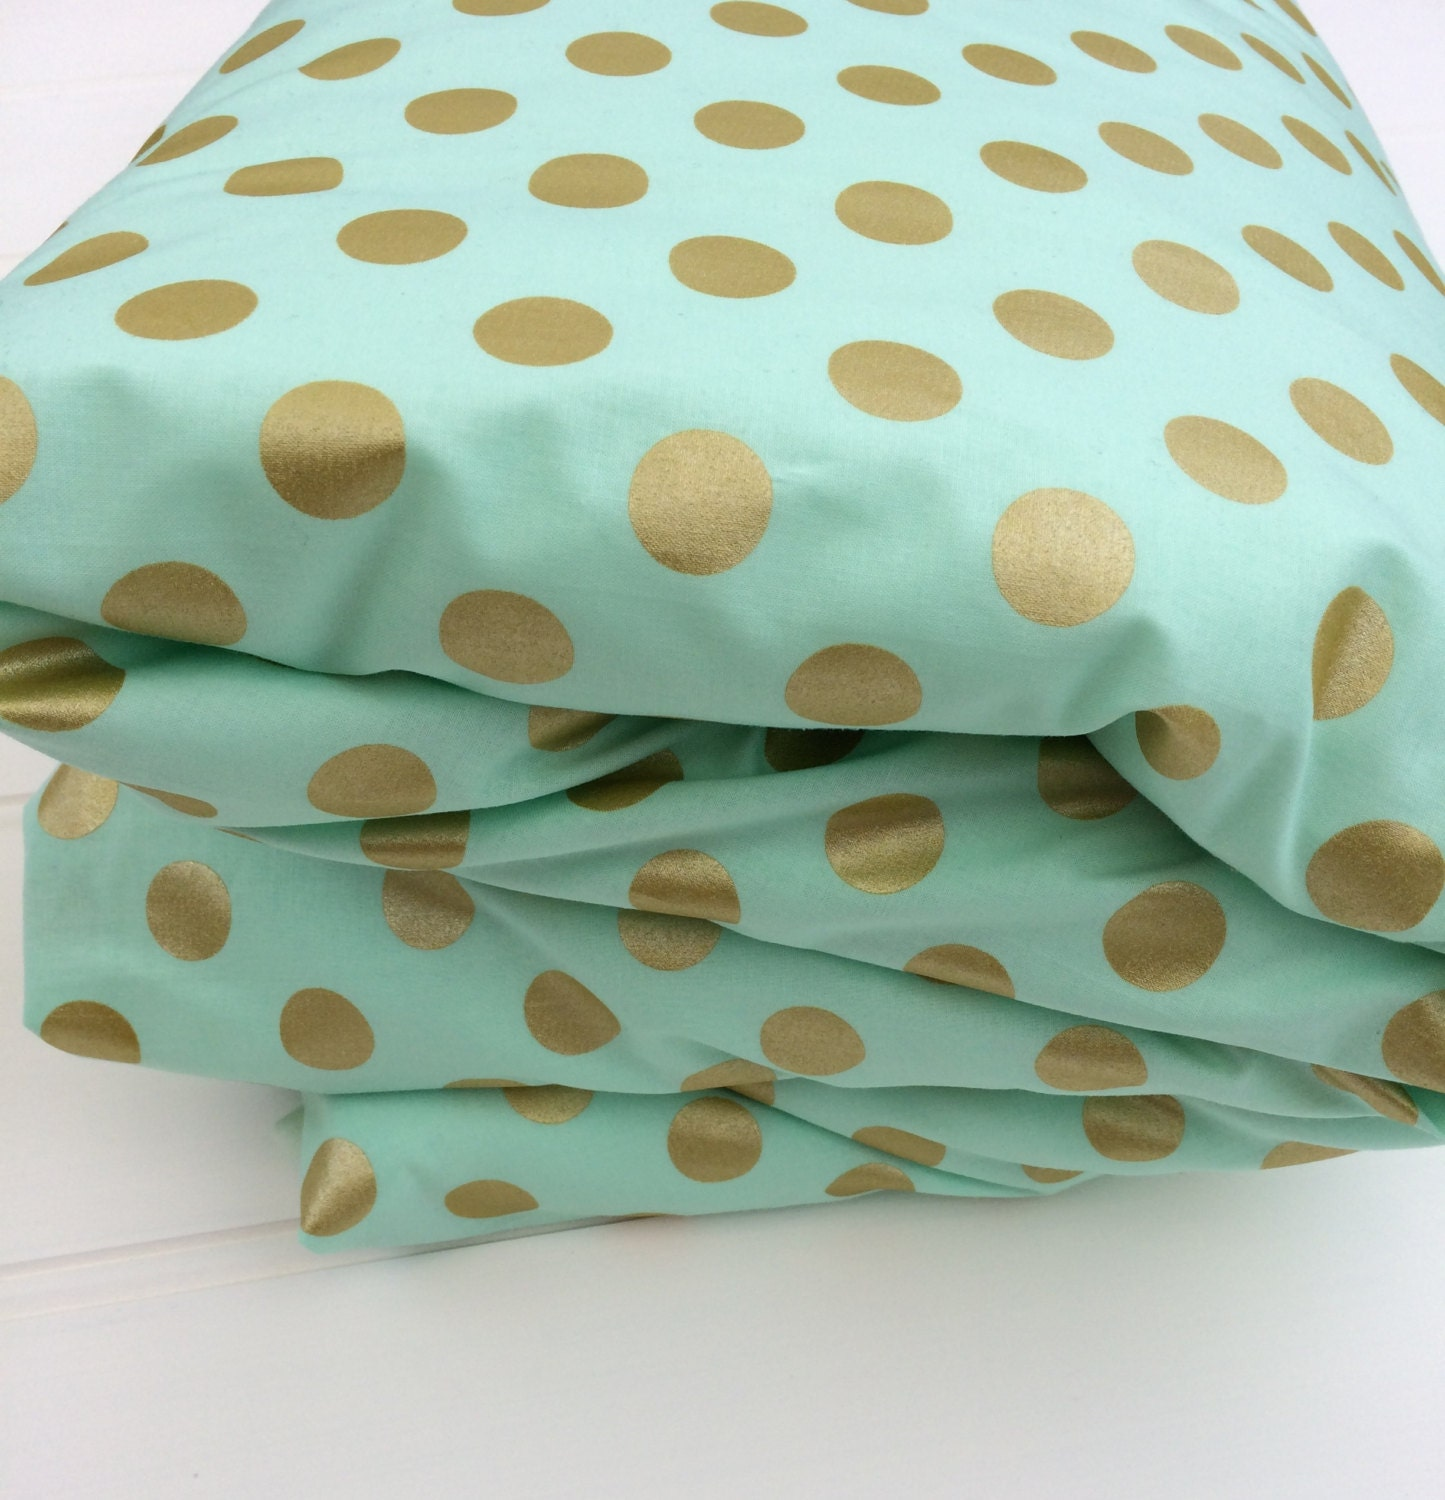 Crib size quilts for sale - Cot Quilt Doona Duvet Cover In Aqua And Gold Dots